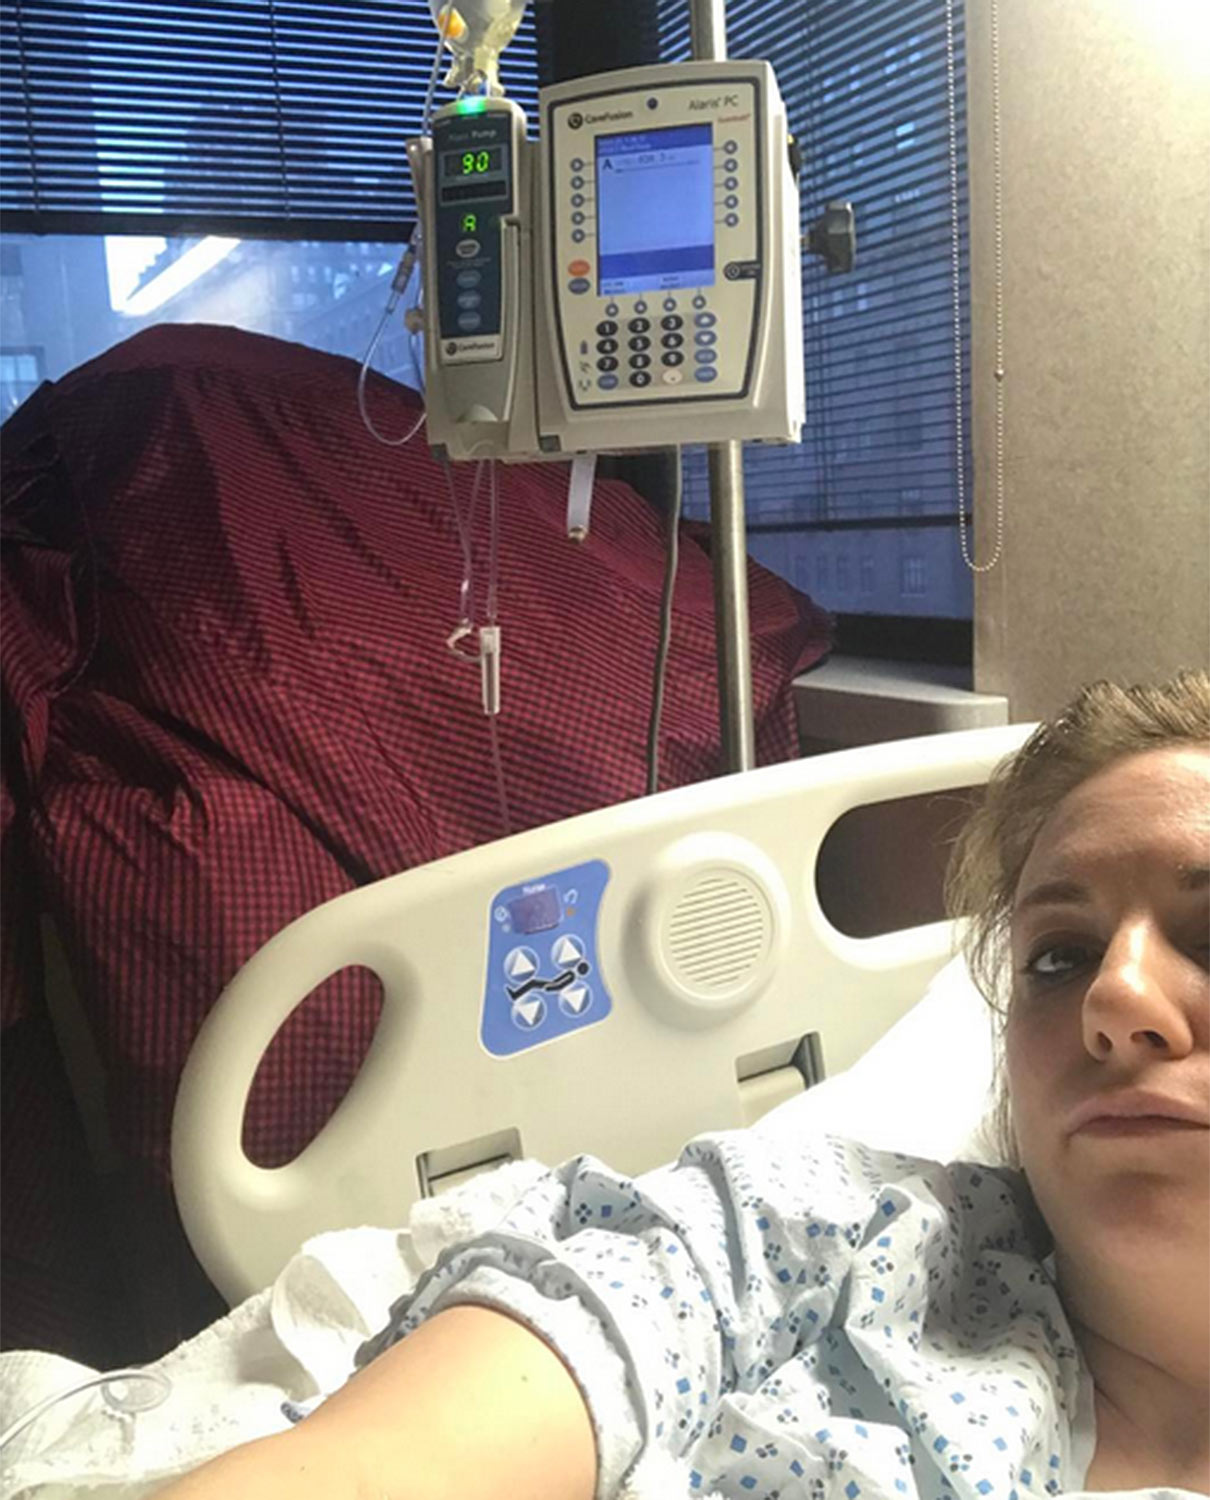 Lena Dunham Shares Photo from Her Hospital Bed After Endometriosis Complication: 'Thank You for All the Love'